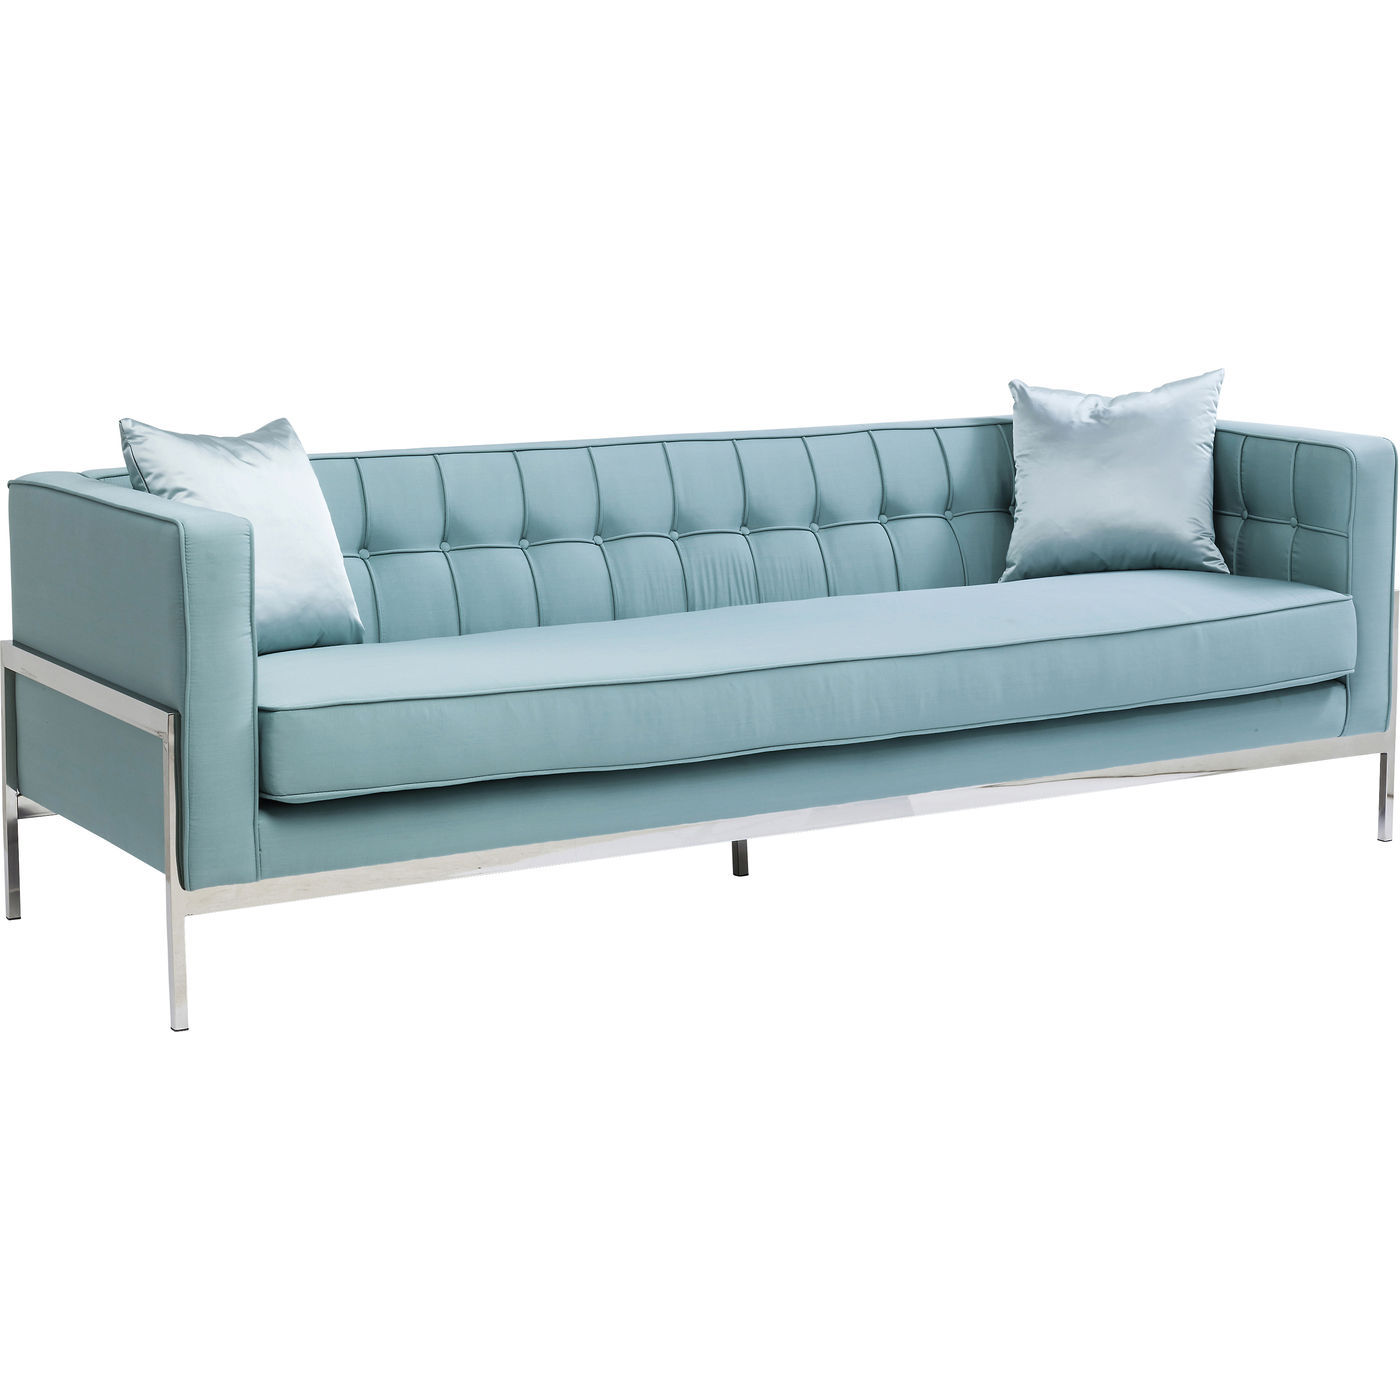 sofa stof 3 pers Loft 3 pers. Sofa i fint lyst polyester stof. Fine syninger sofa stof 3 pers